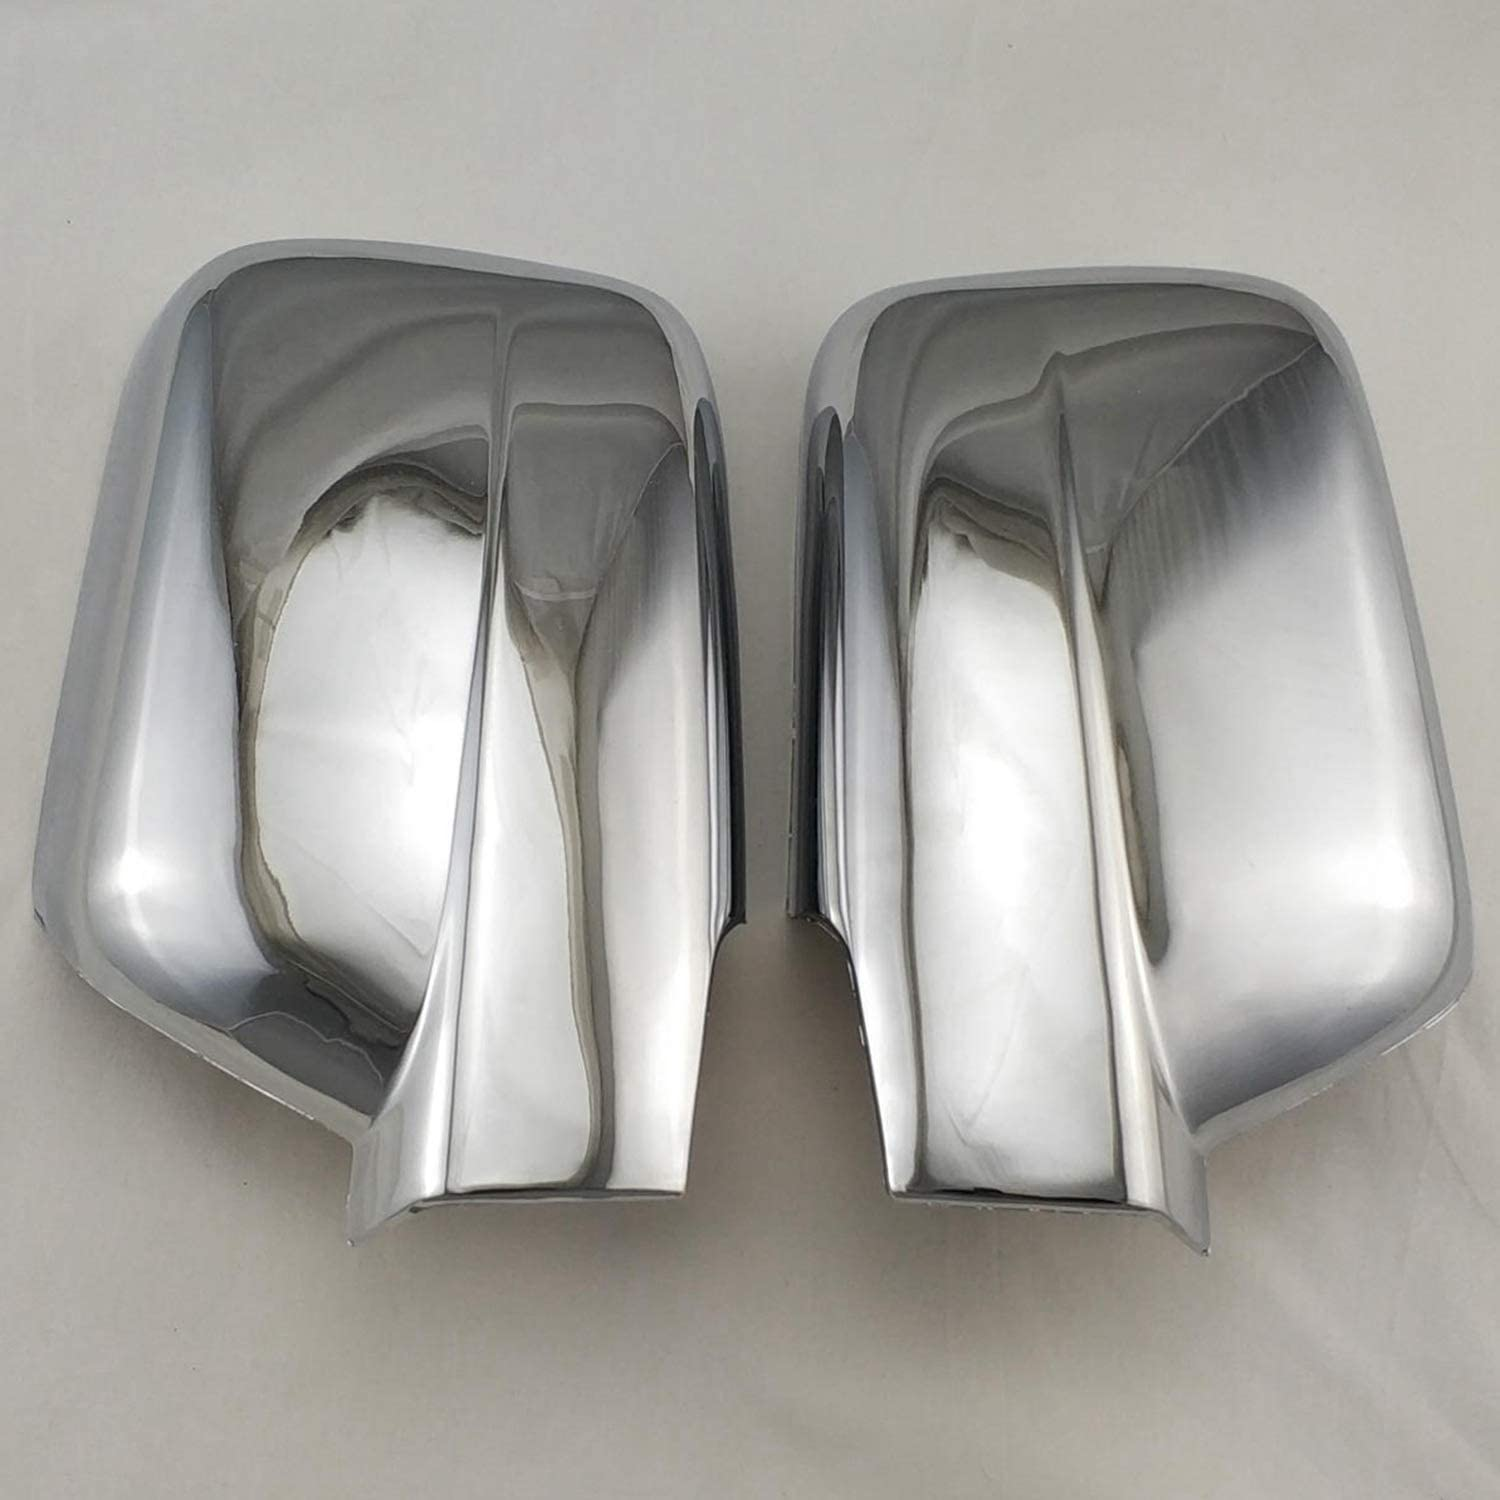 Haudang Car Door Mirror Covers Car Modification for X-Trail 2002-2010 T30 ABS Chrome Plated